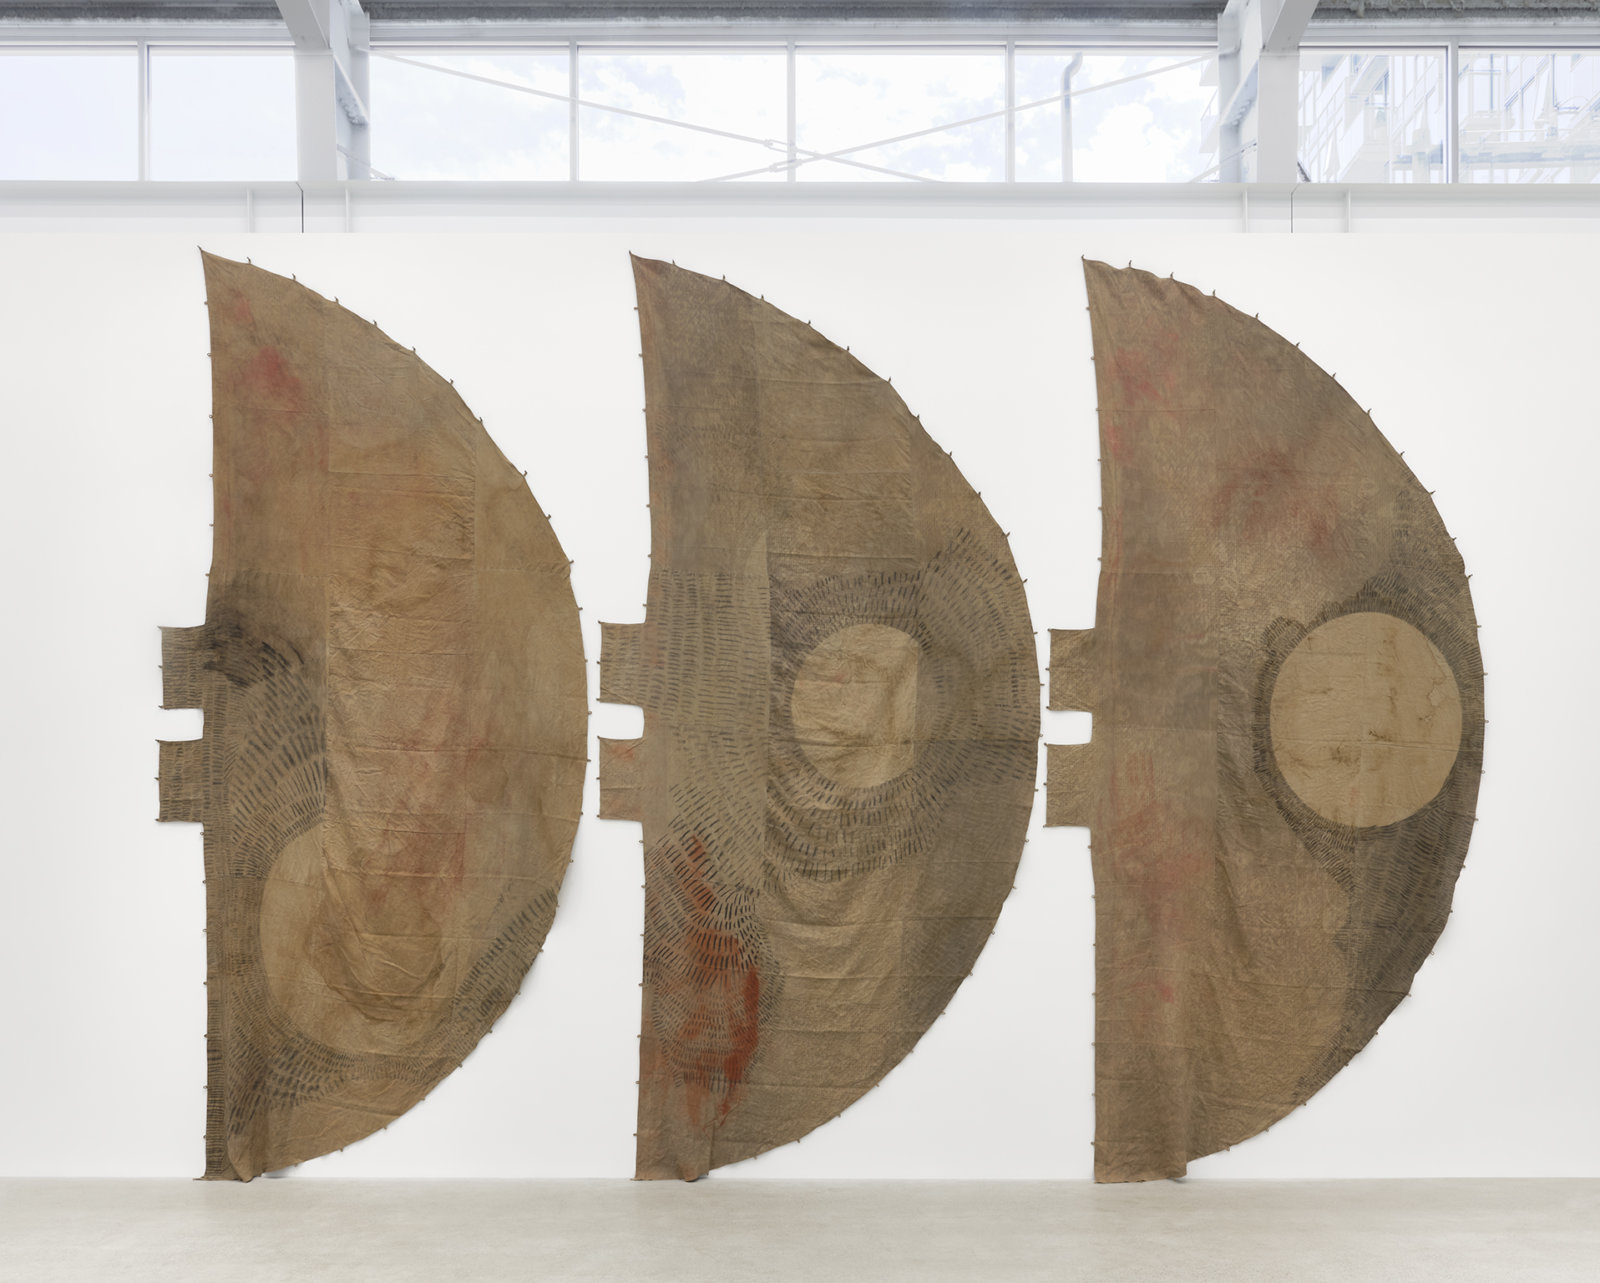 Duane Linklater, winter in america_no door_âkamenimok, 2020, digital print on hand dyed linen, black tea and sumac dye, charcoal, cup and saucer ochre, iron red pigment, dandelion, nails, 218 x 312 x 6 in. (554 x 793 x 15 cm)